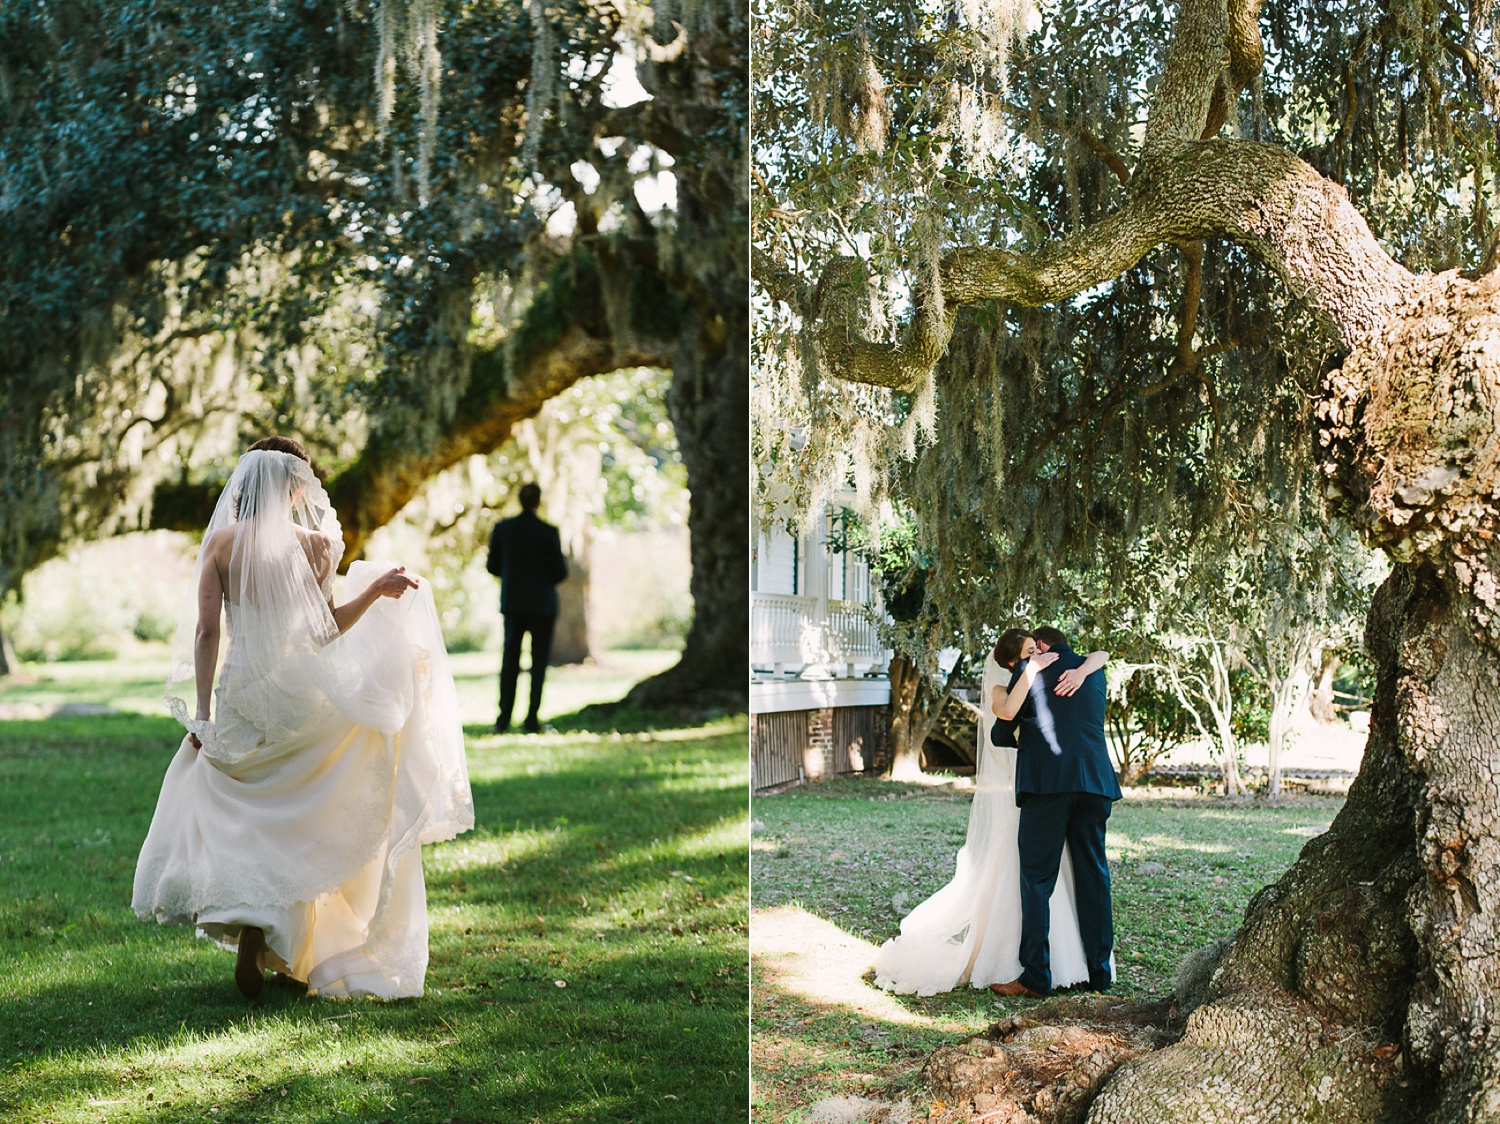 Lindsey_A_Miller_photography_charleston_mcleod_plantation_wedding_row_of_oaks_southern_classic_fall_spanish_moss_historic_home_036.jpg